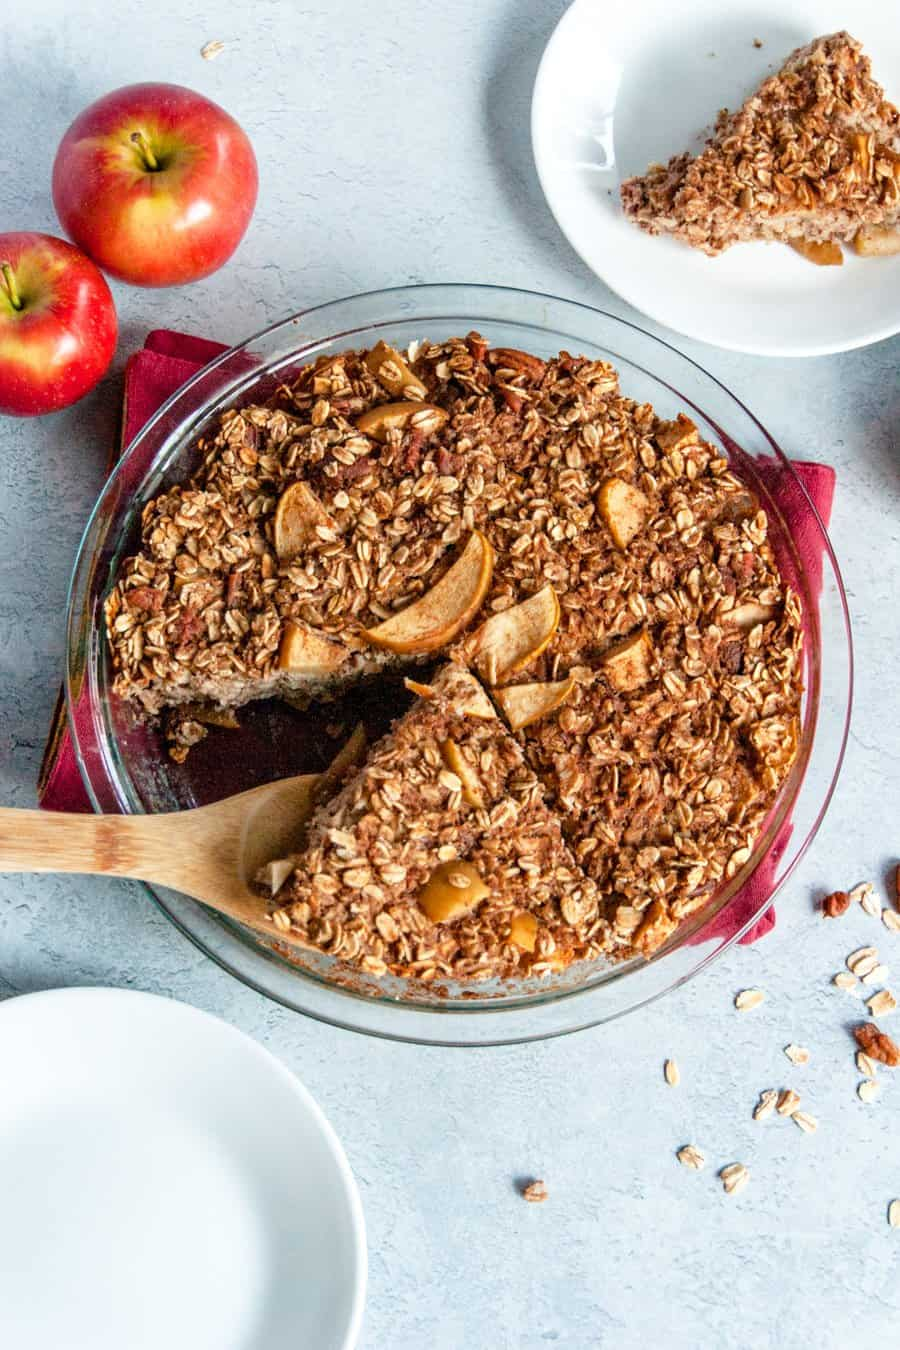 A round baking dish full of Apple Baked Oatmeal with a slice being served.